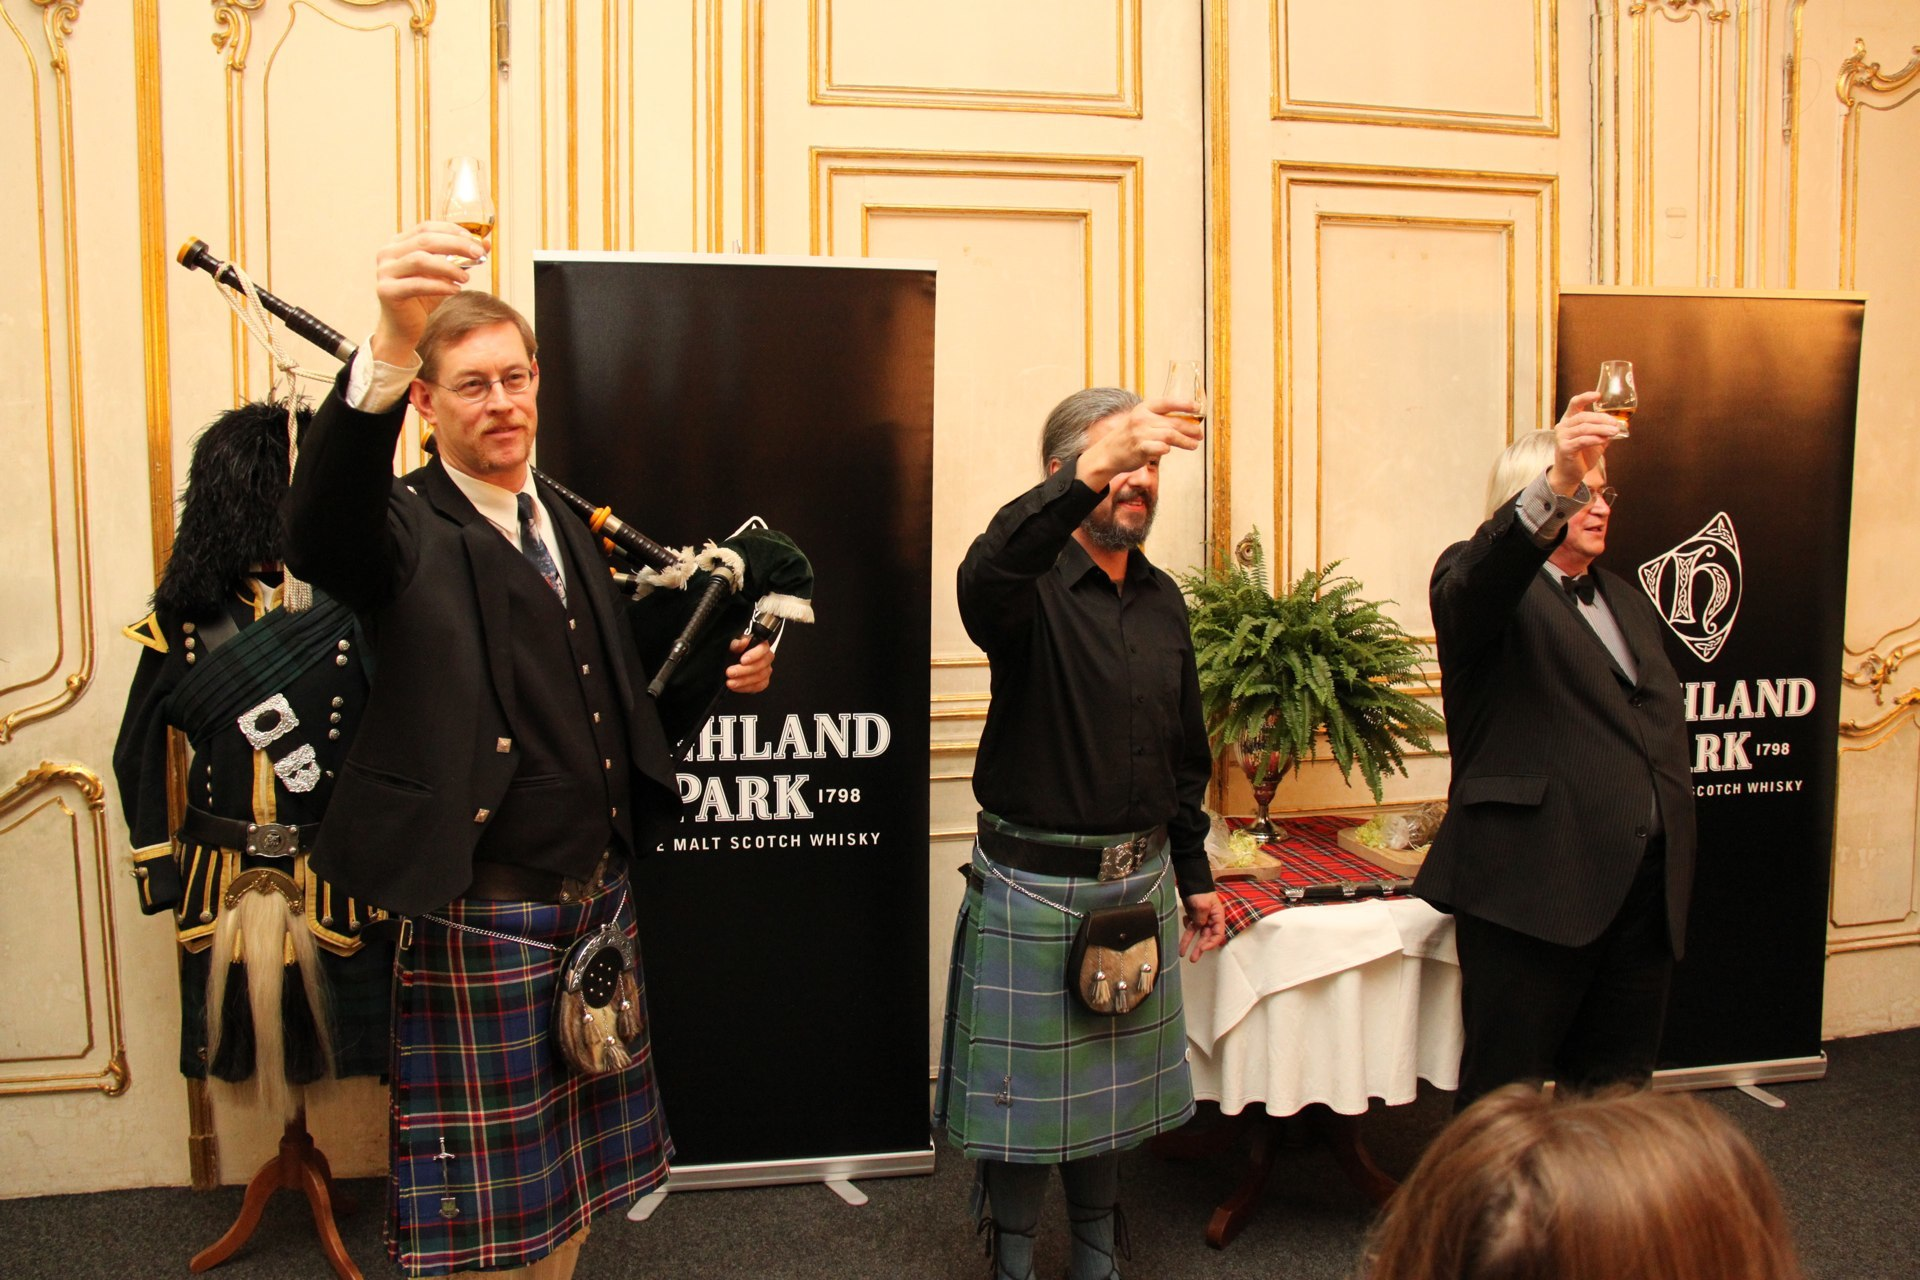 Chip, Alastair and Jiri toast the haggis!